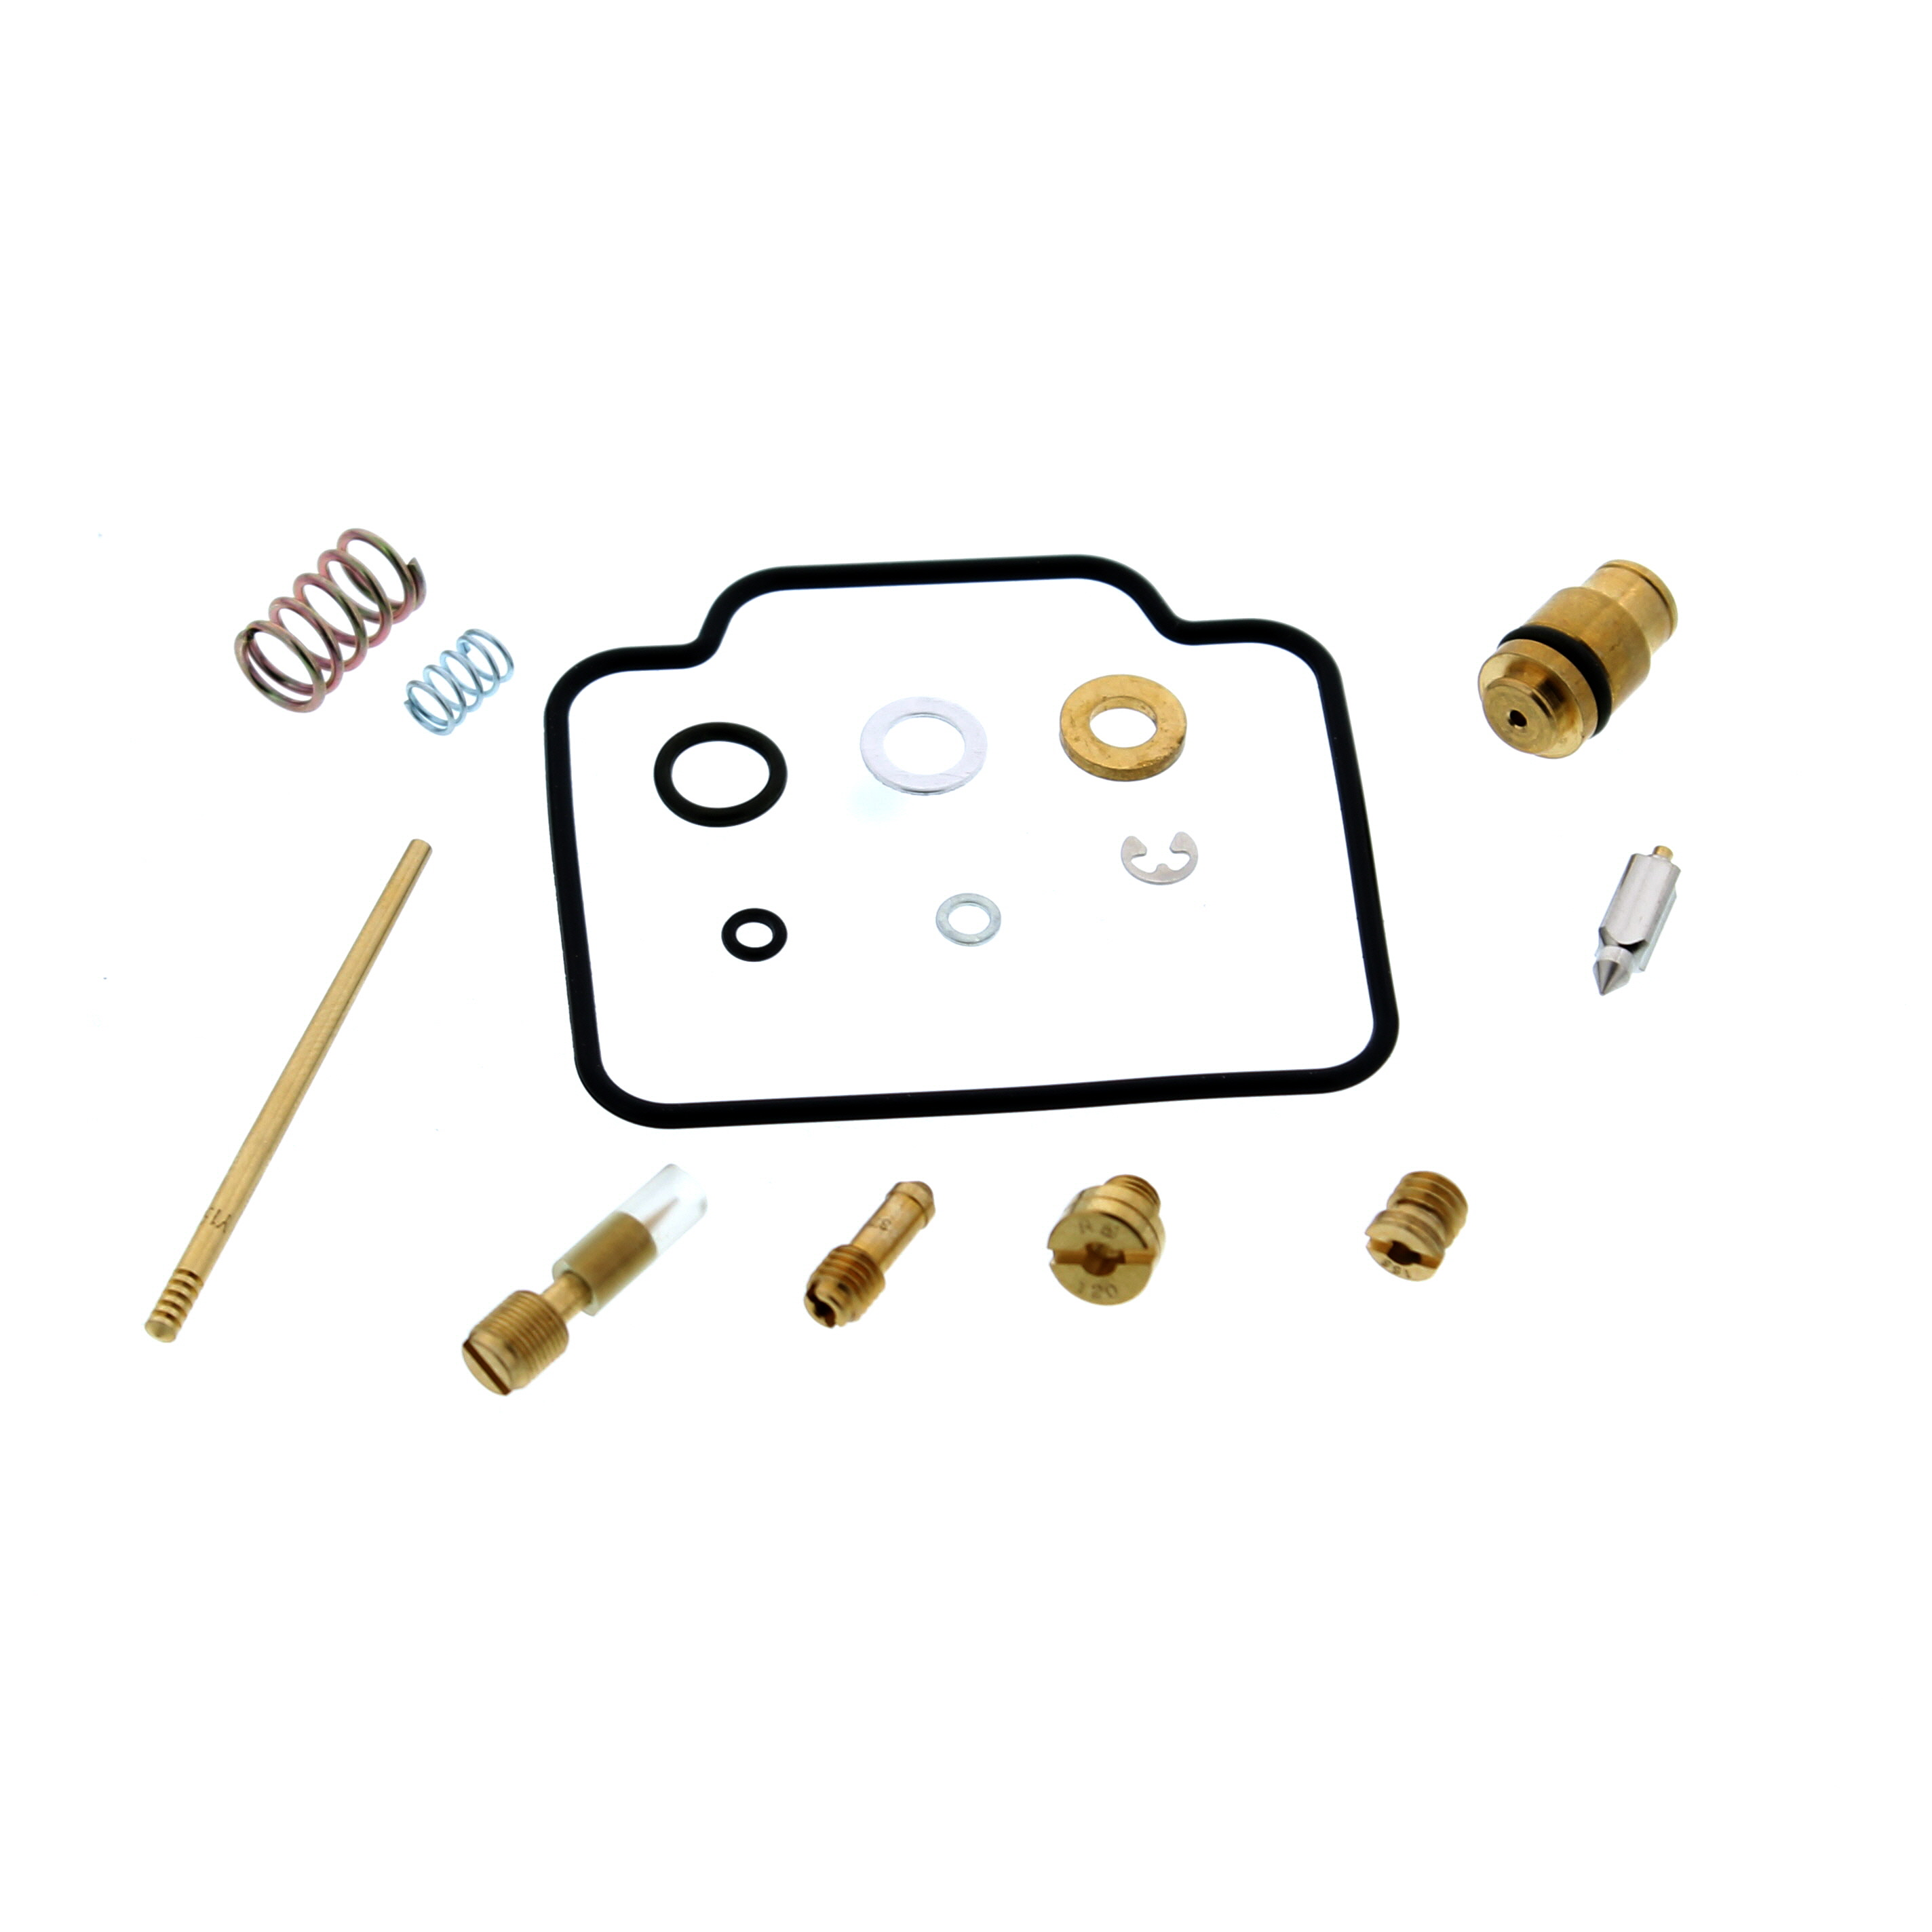 Carburetor Repair Kit Carb Kit fits Suzuki LT-FWDX 300